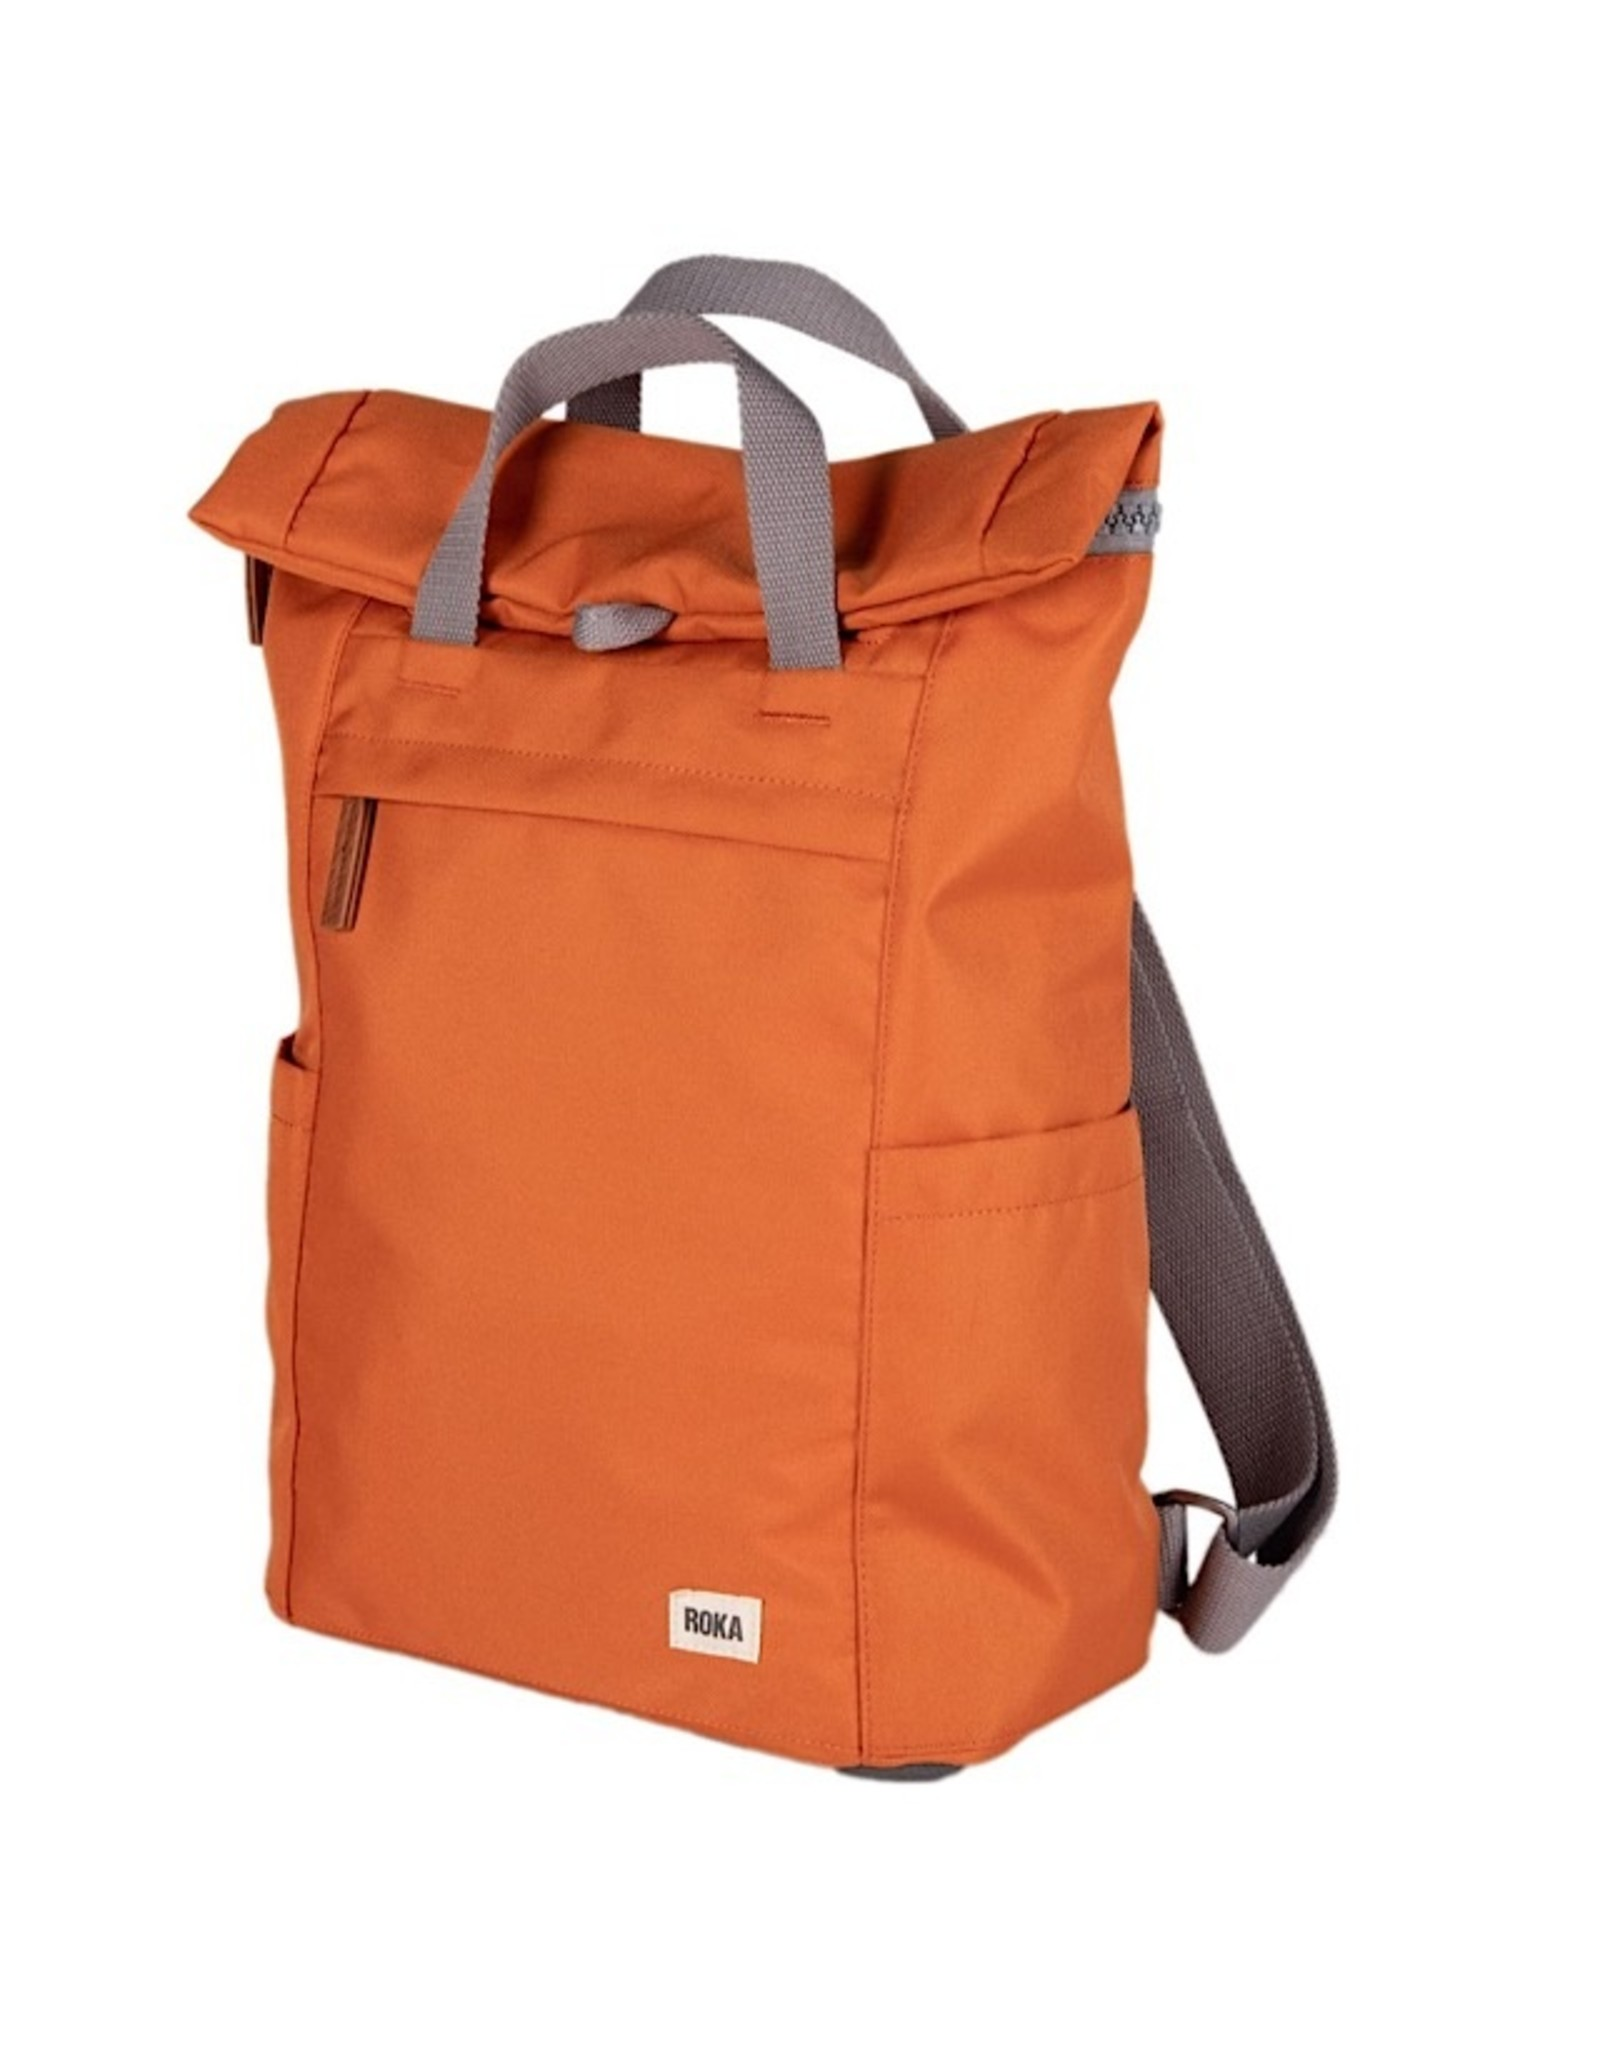 ROKA London Finchley A sustainable large atomic orange - grösse L